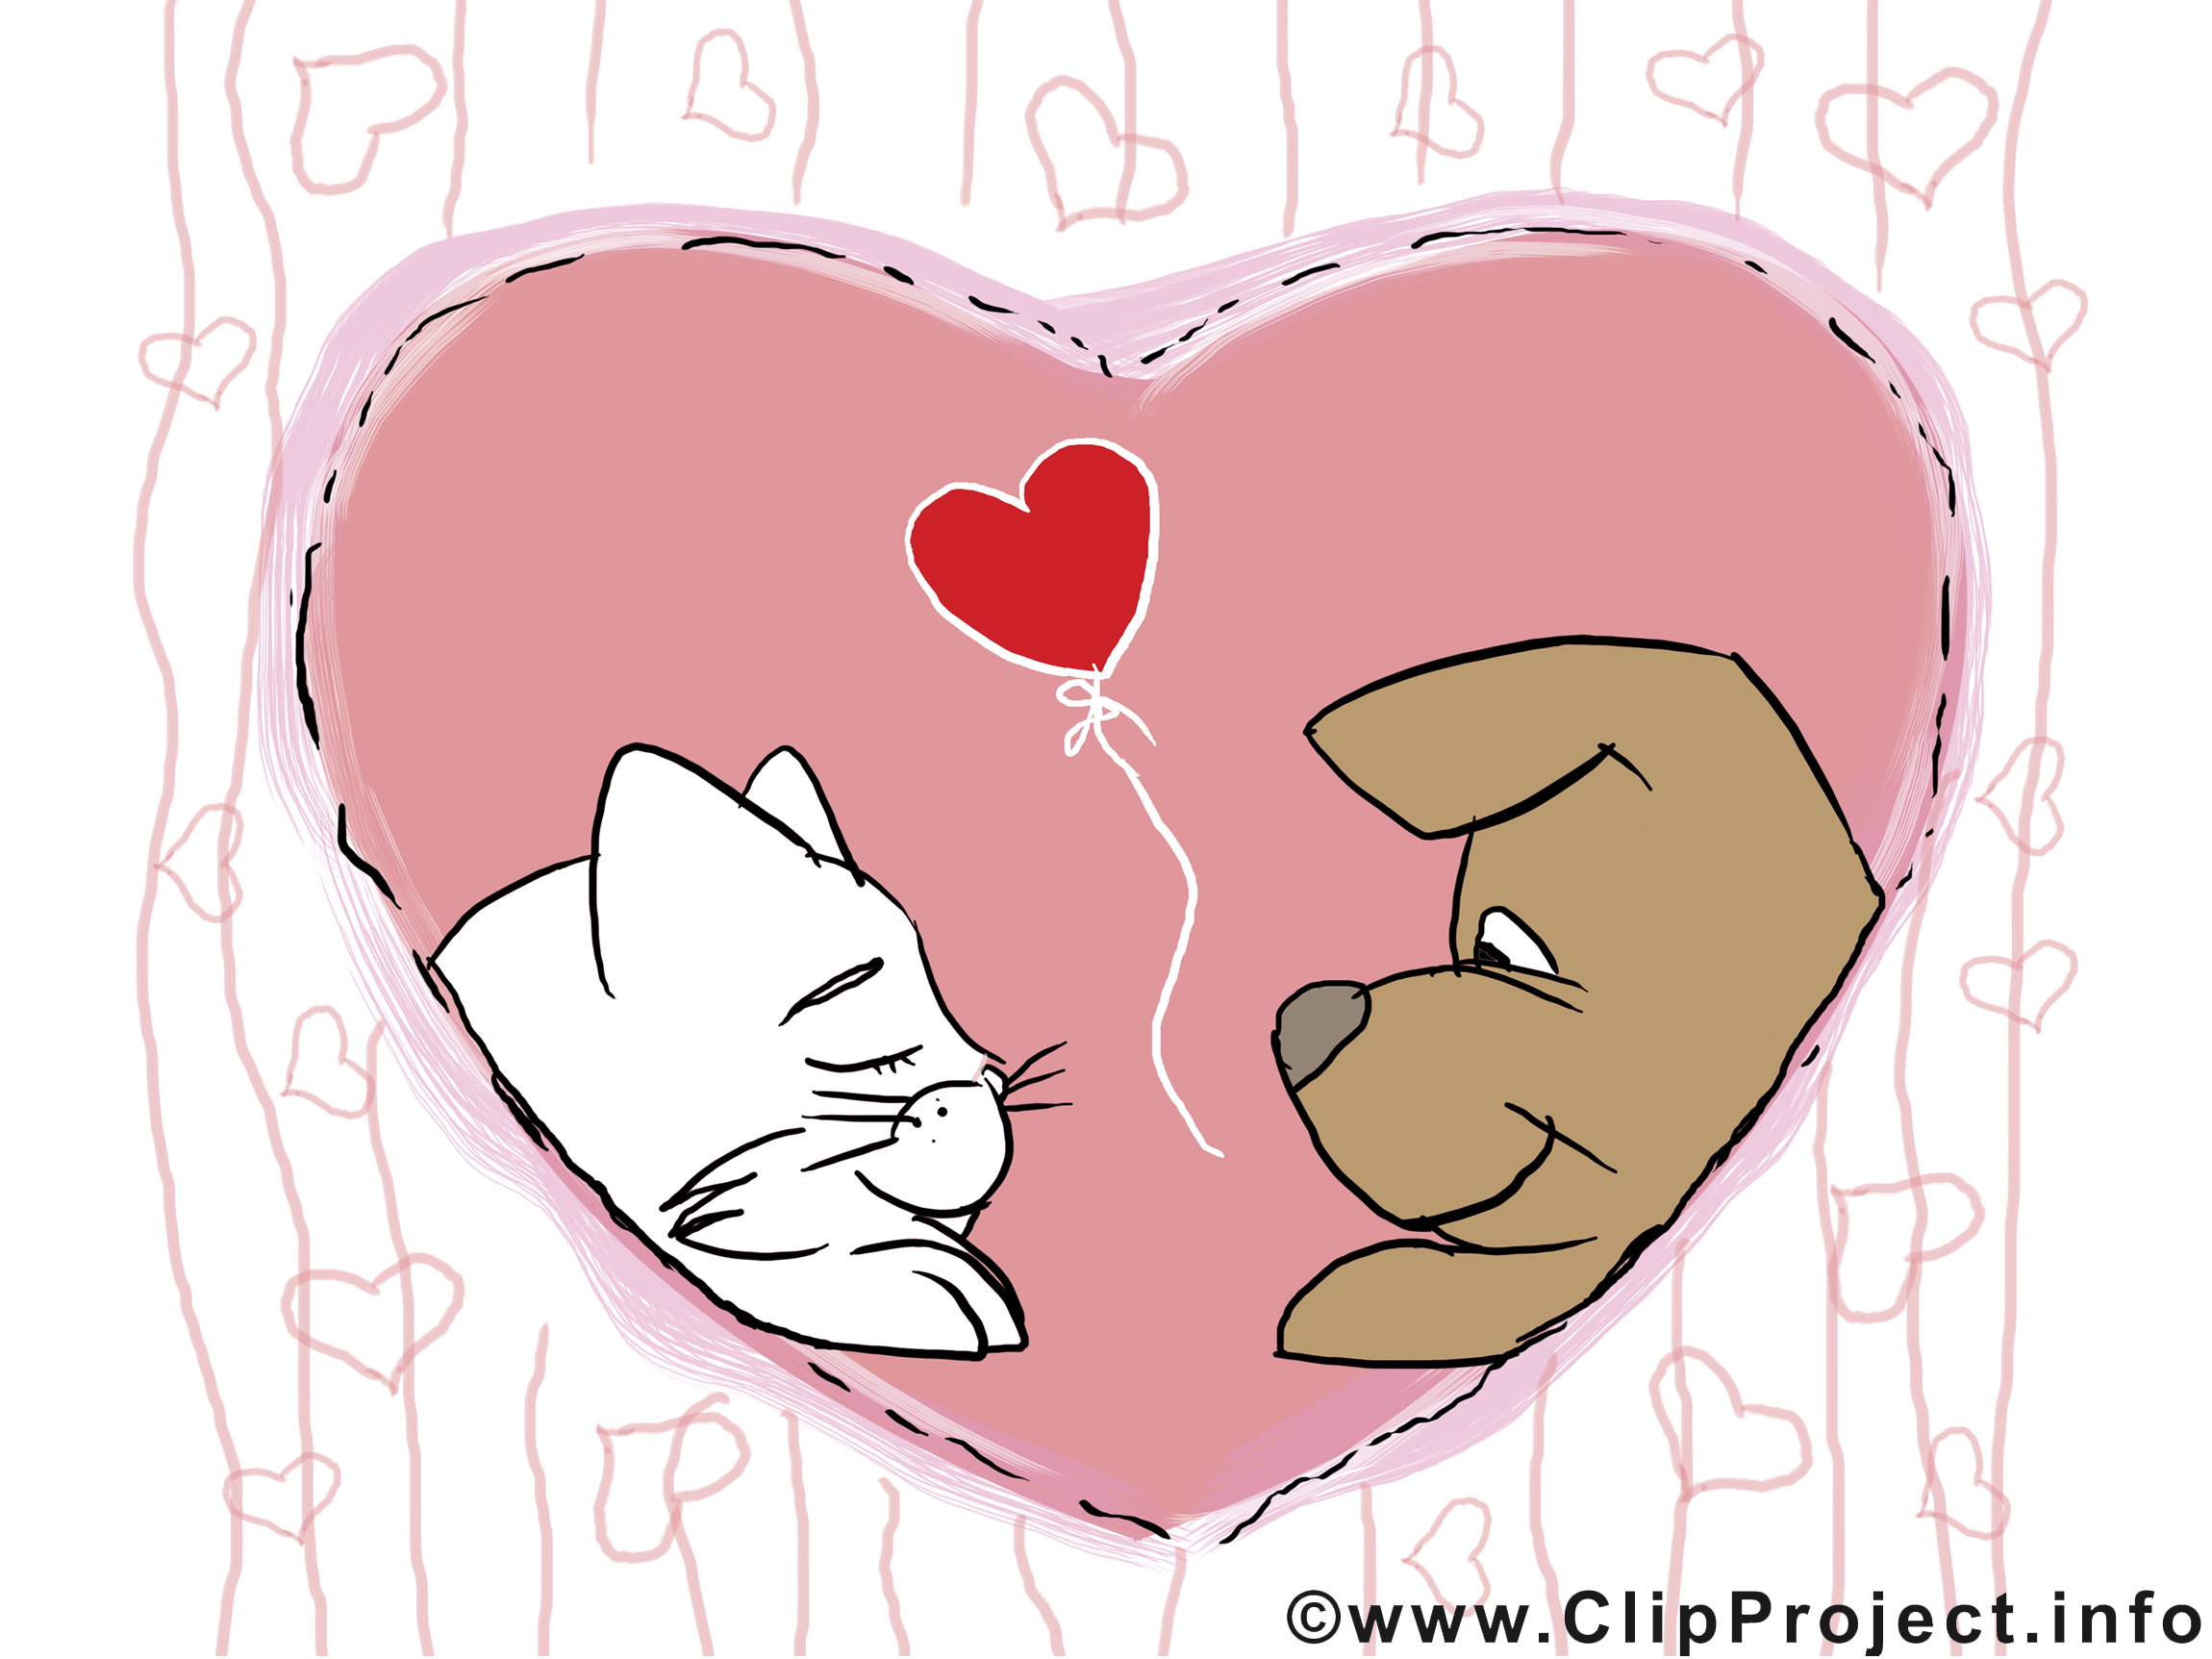 chien et chat dessin gratuit saint valentin saint valentin cartes mariage dessin picture. Black Bedroom Furniture Sets. Home Design Ideas